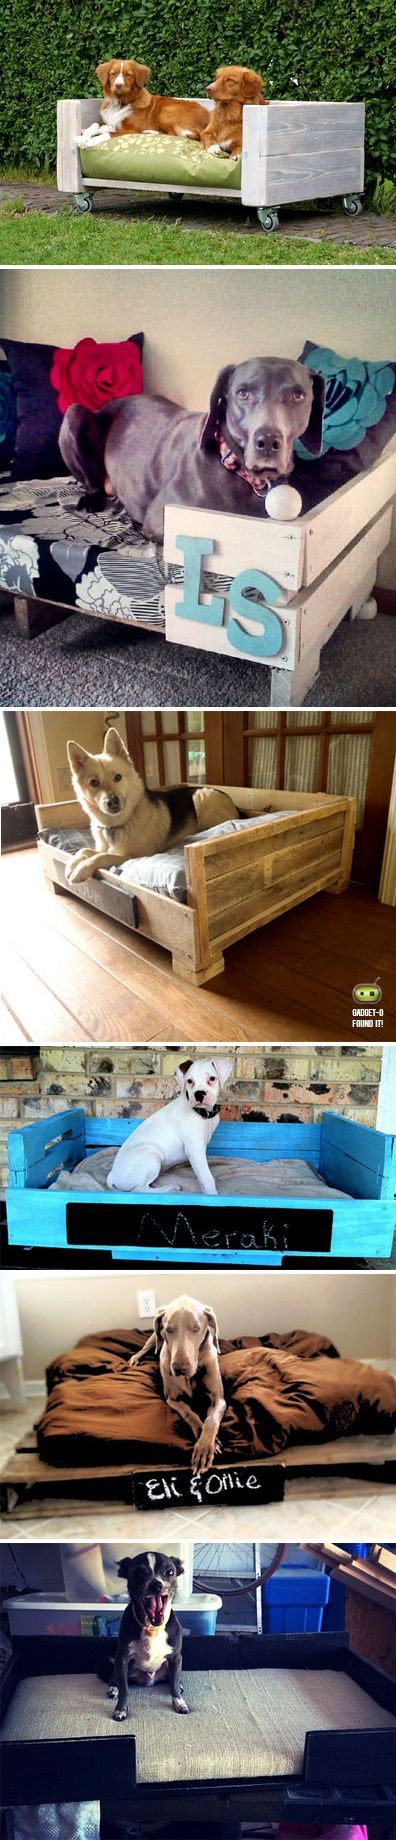 DIY pallet beds for pets! I love love love Pet beds!